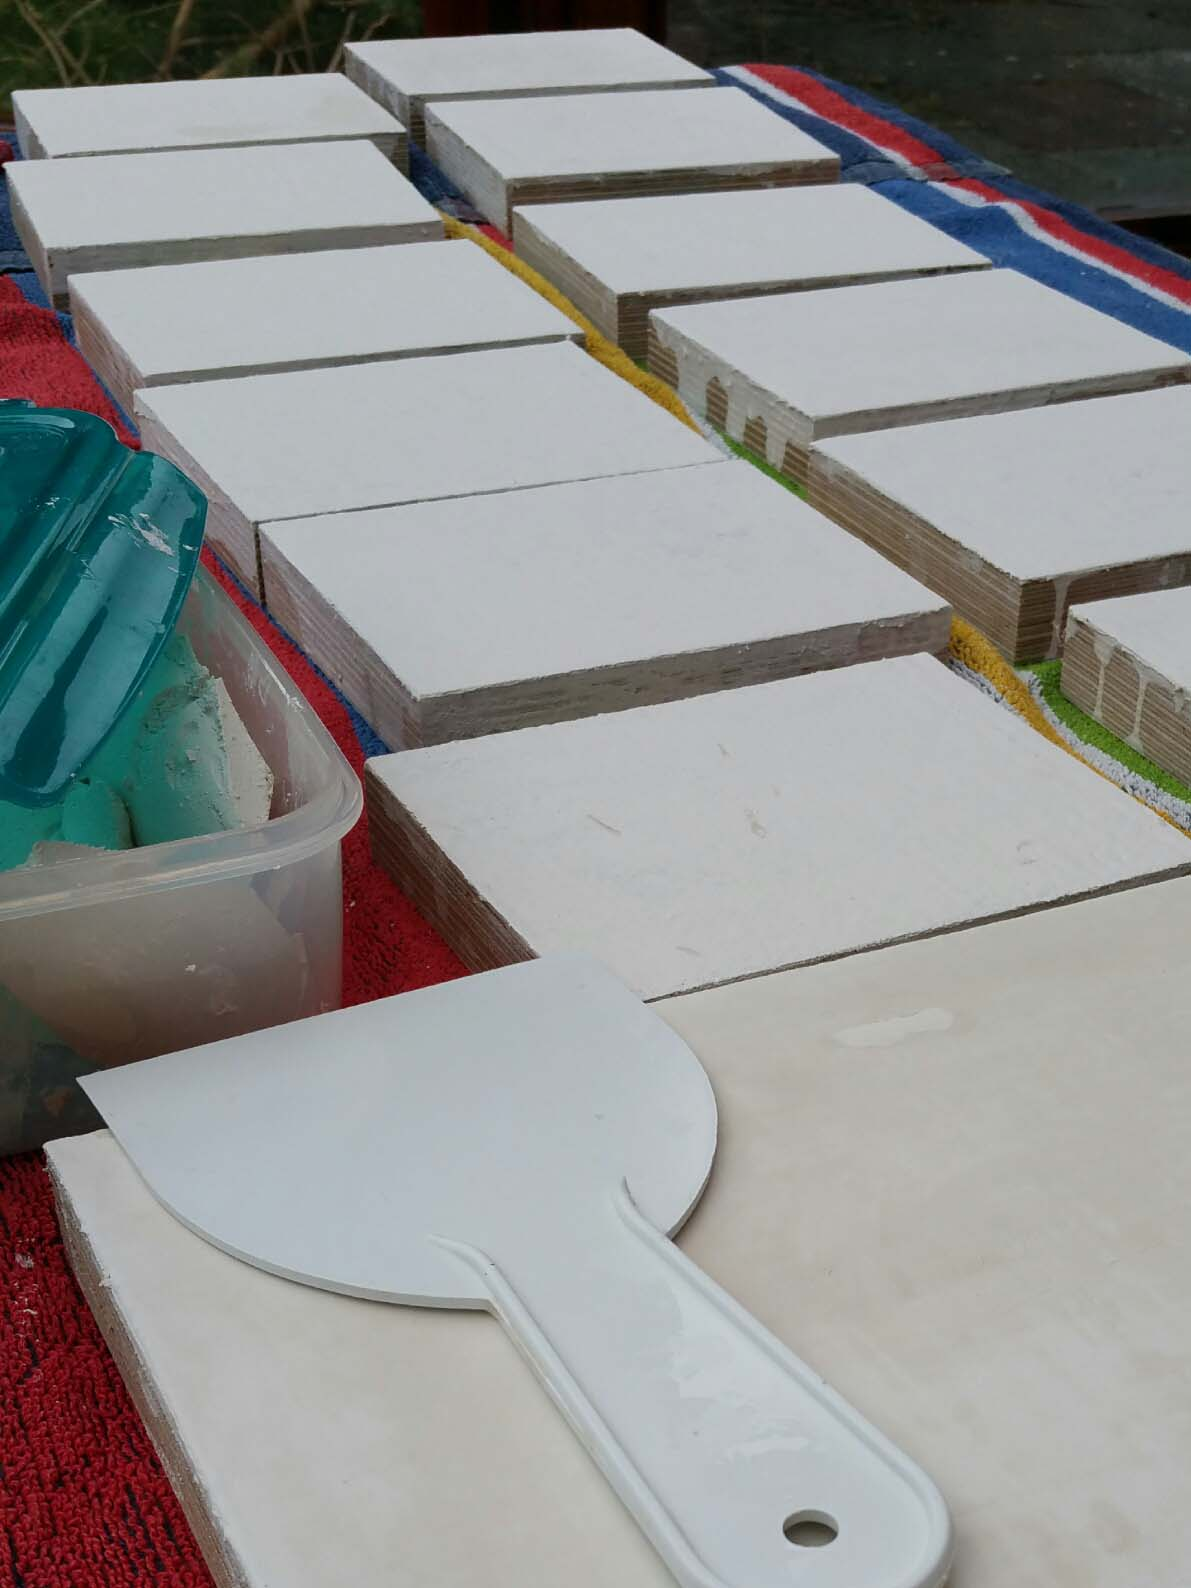 icon boards laid out to gesso